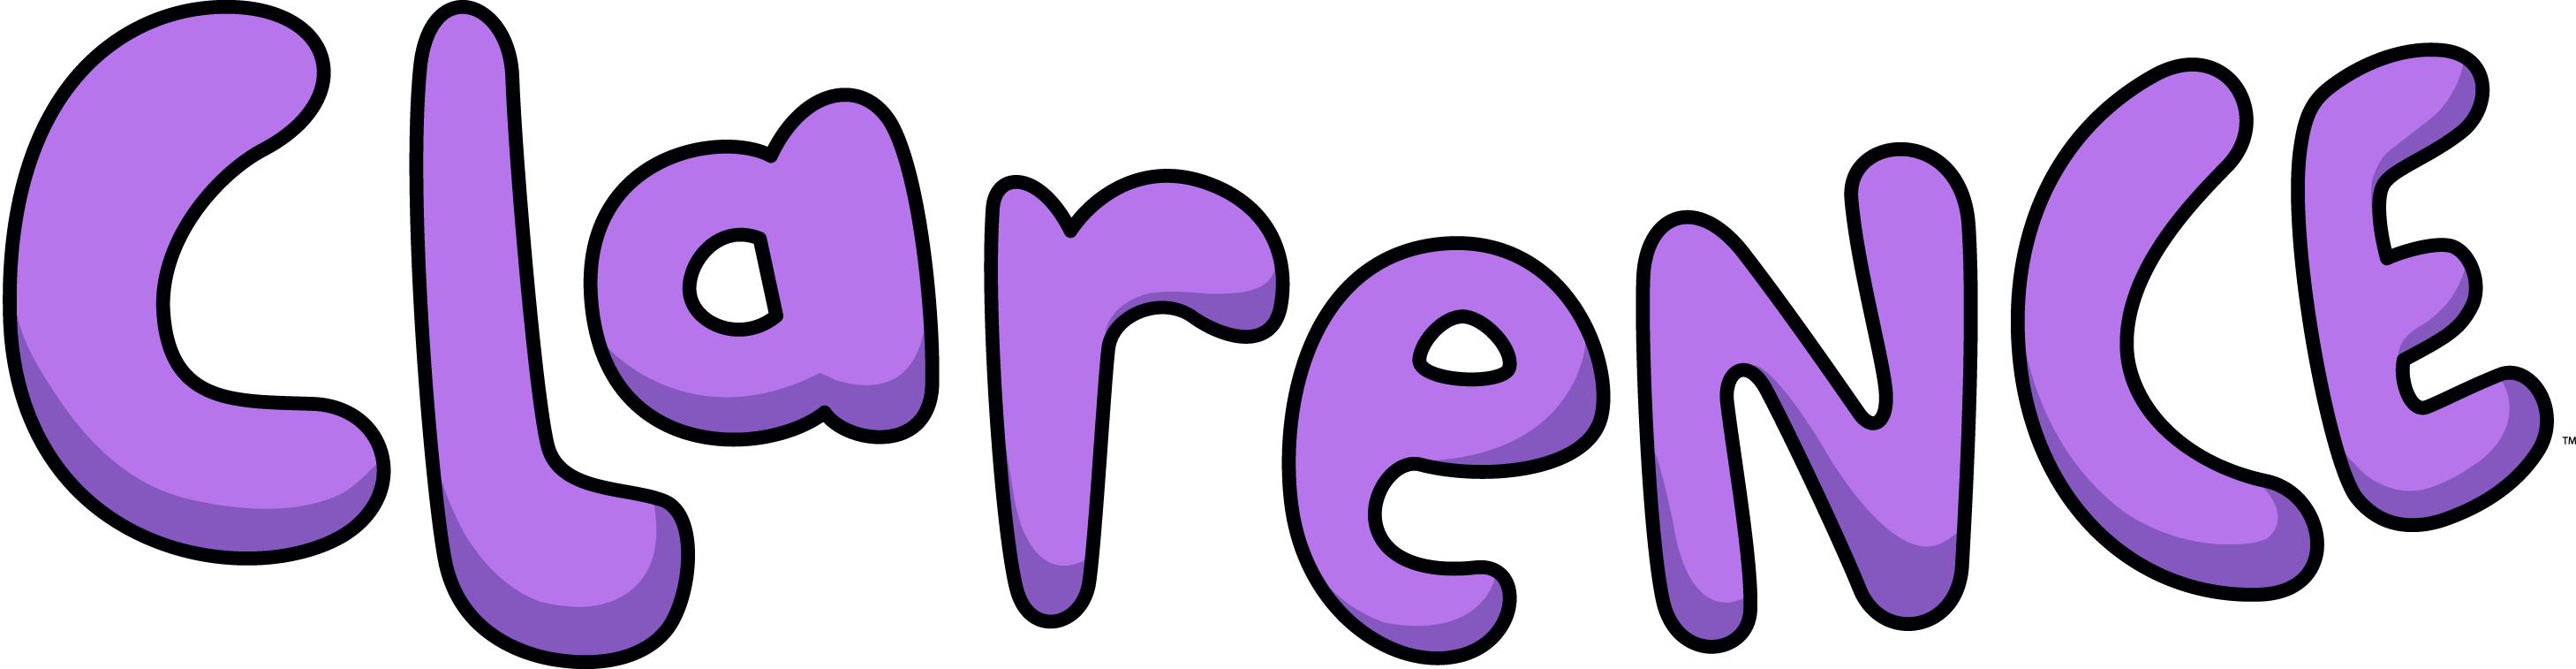 Logo_Clarence_NEW-prsrm.png